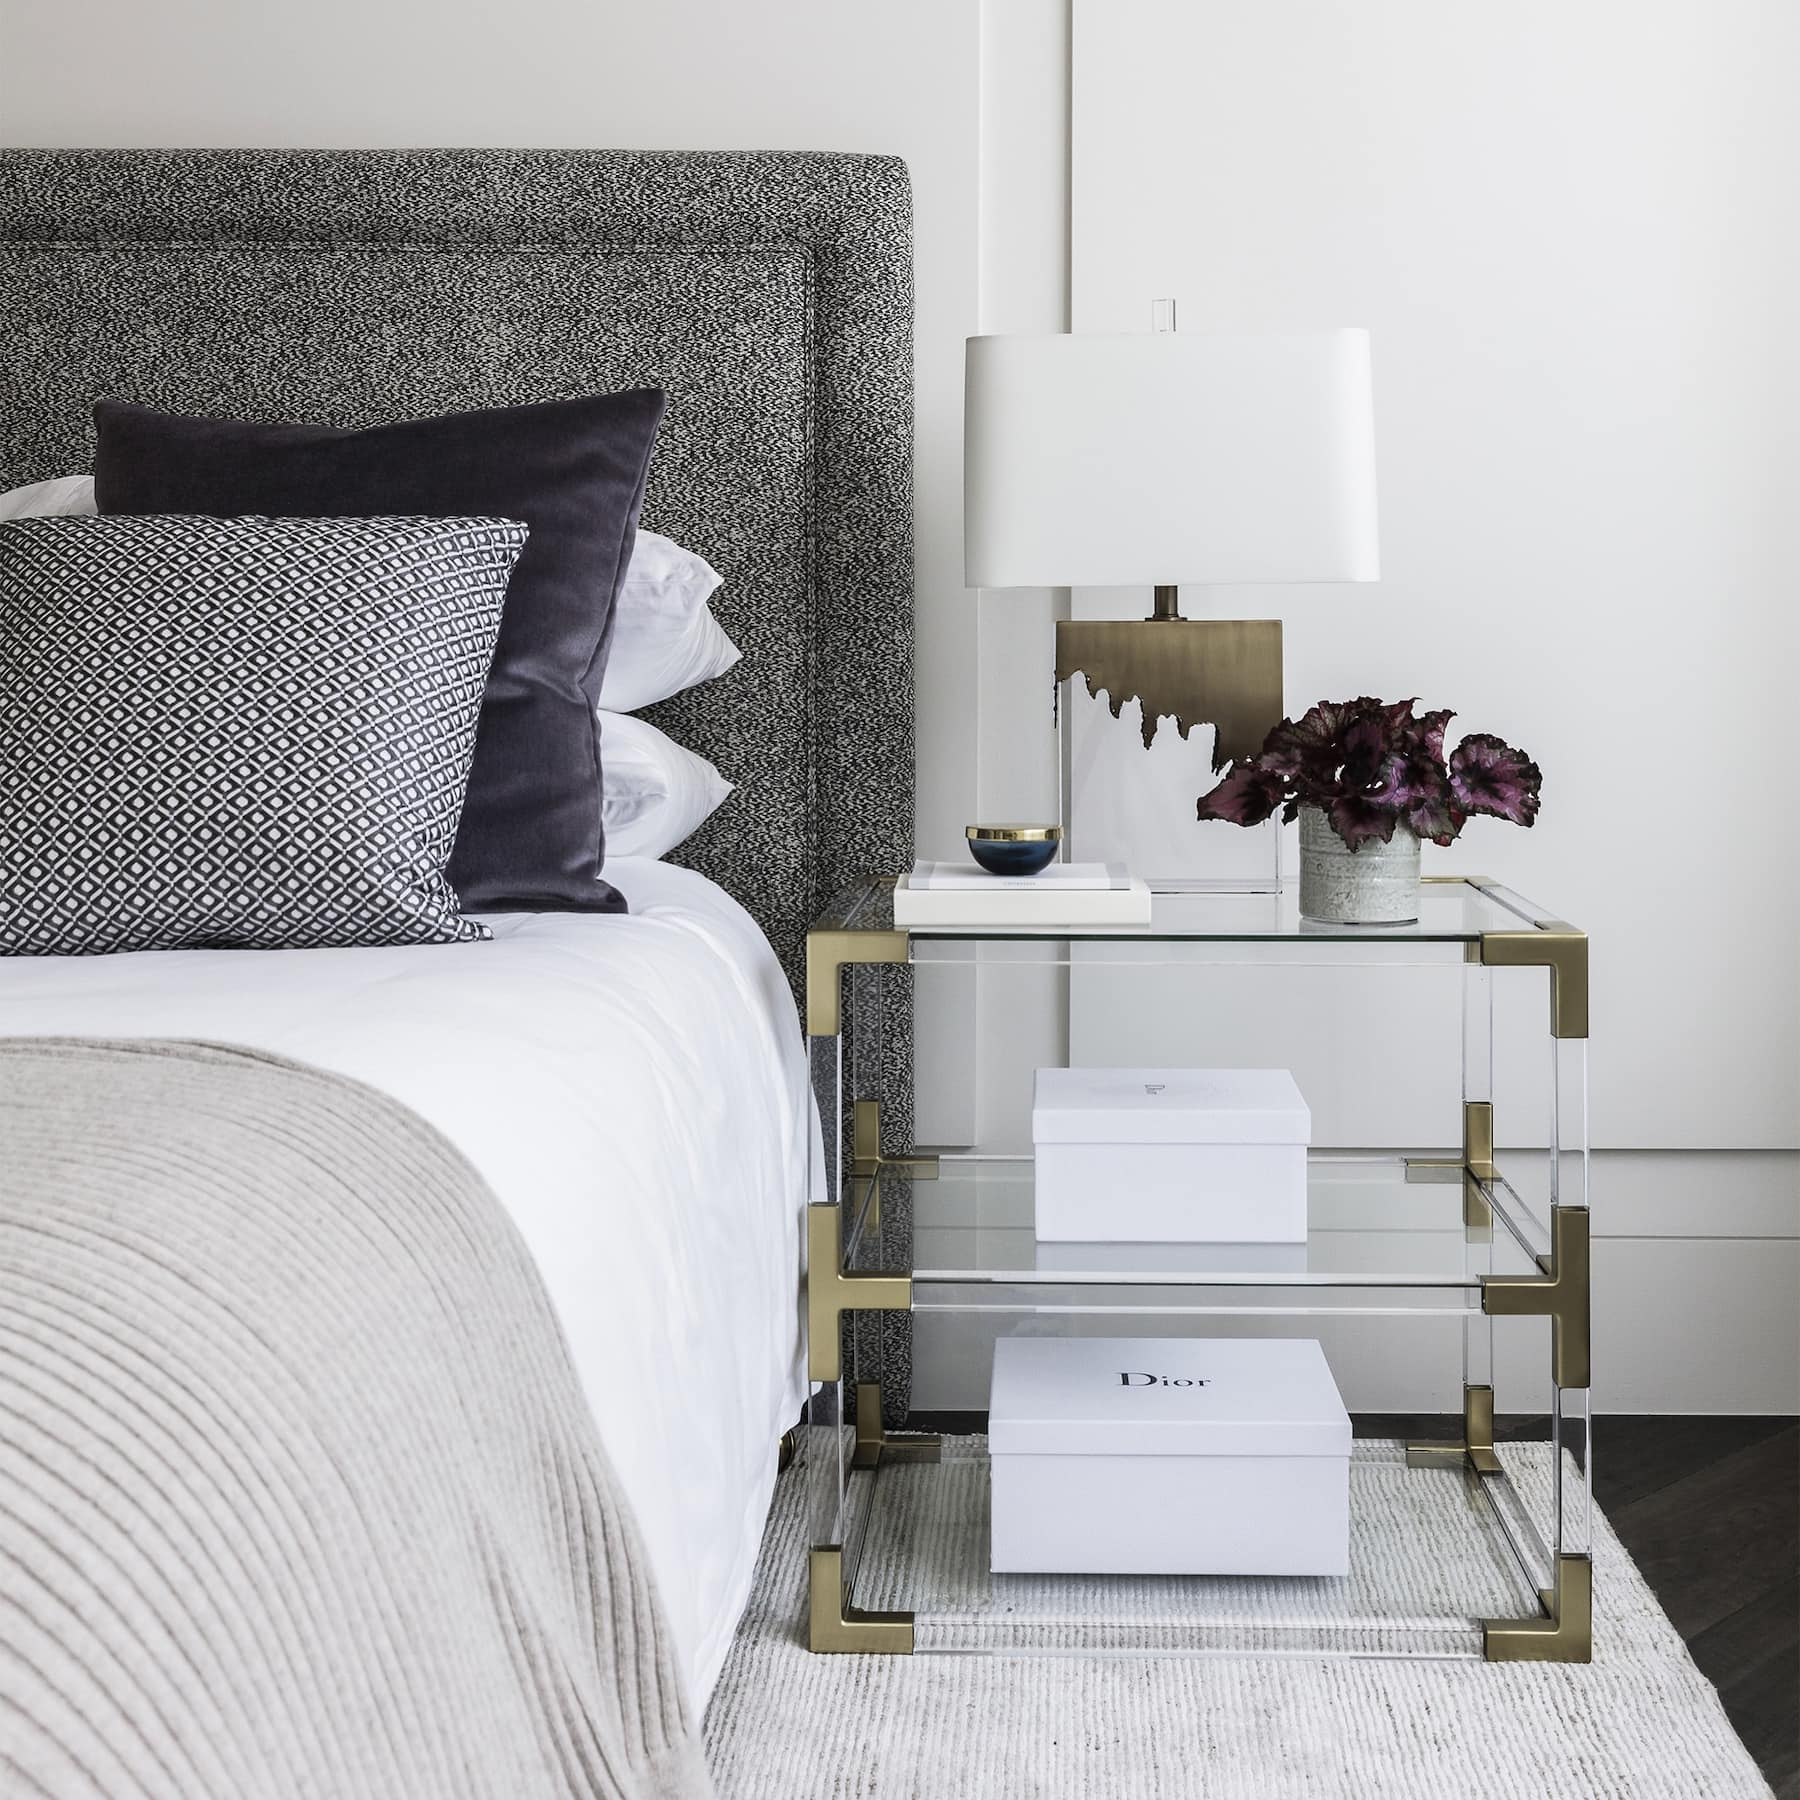 coco republic brass table lamp in chic minimal luxe bedroom